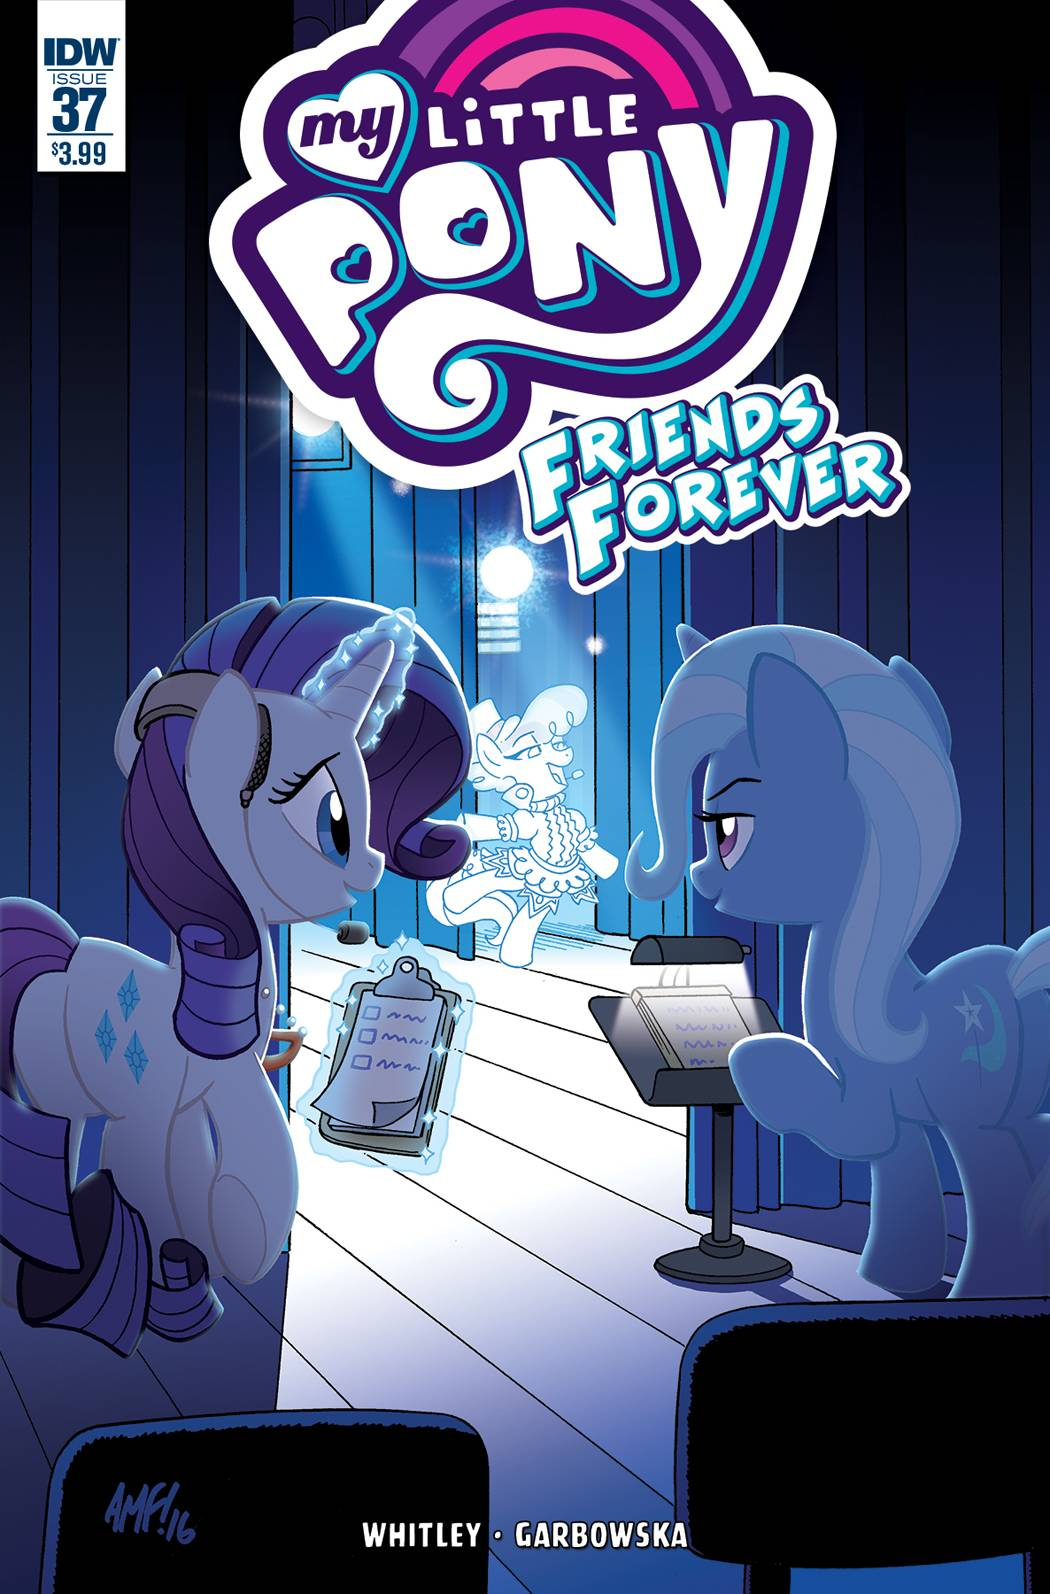 MY LITTLE PONY FRIENDS FOREVER #37